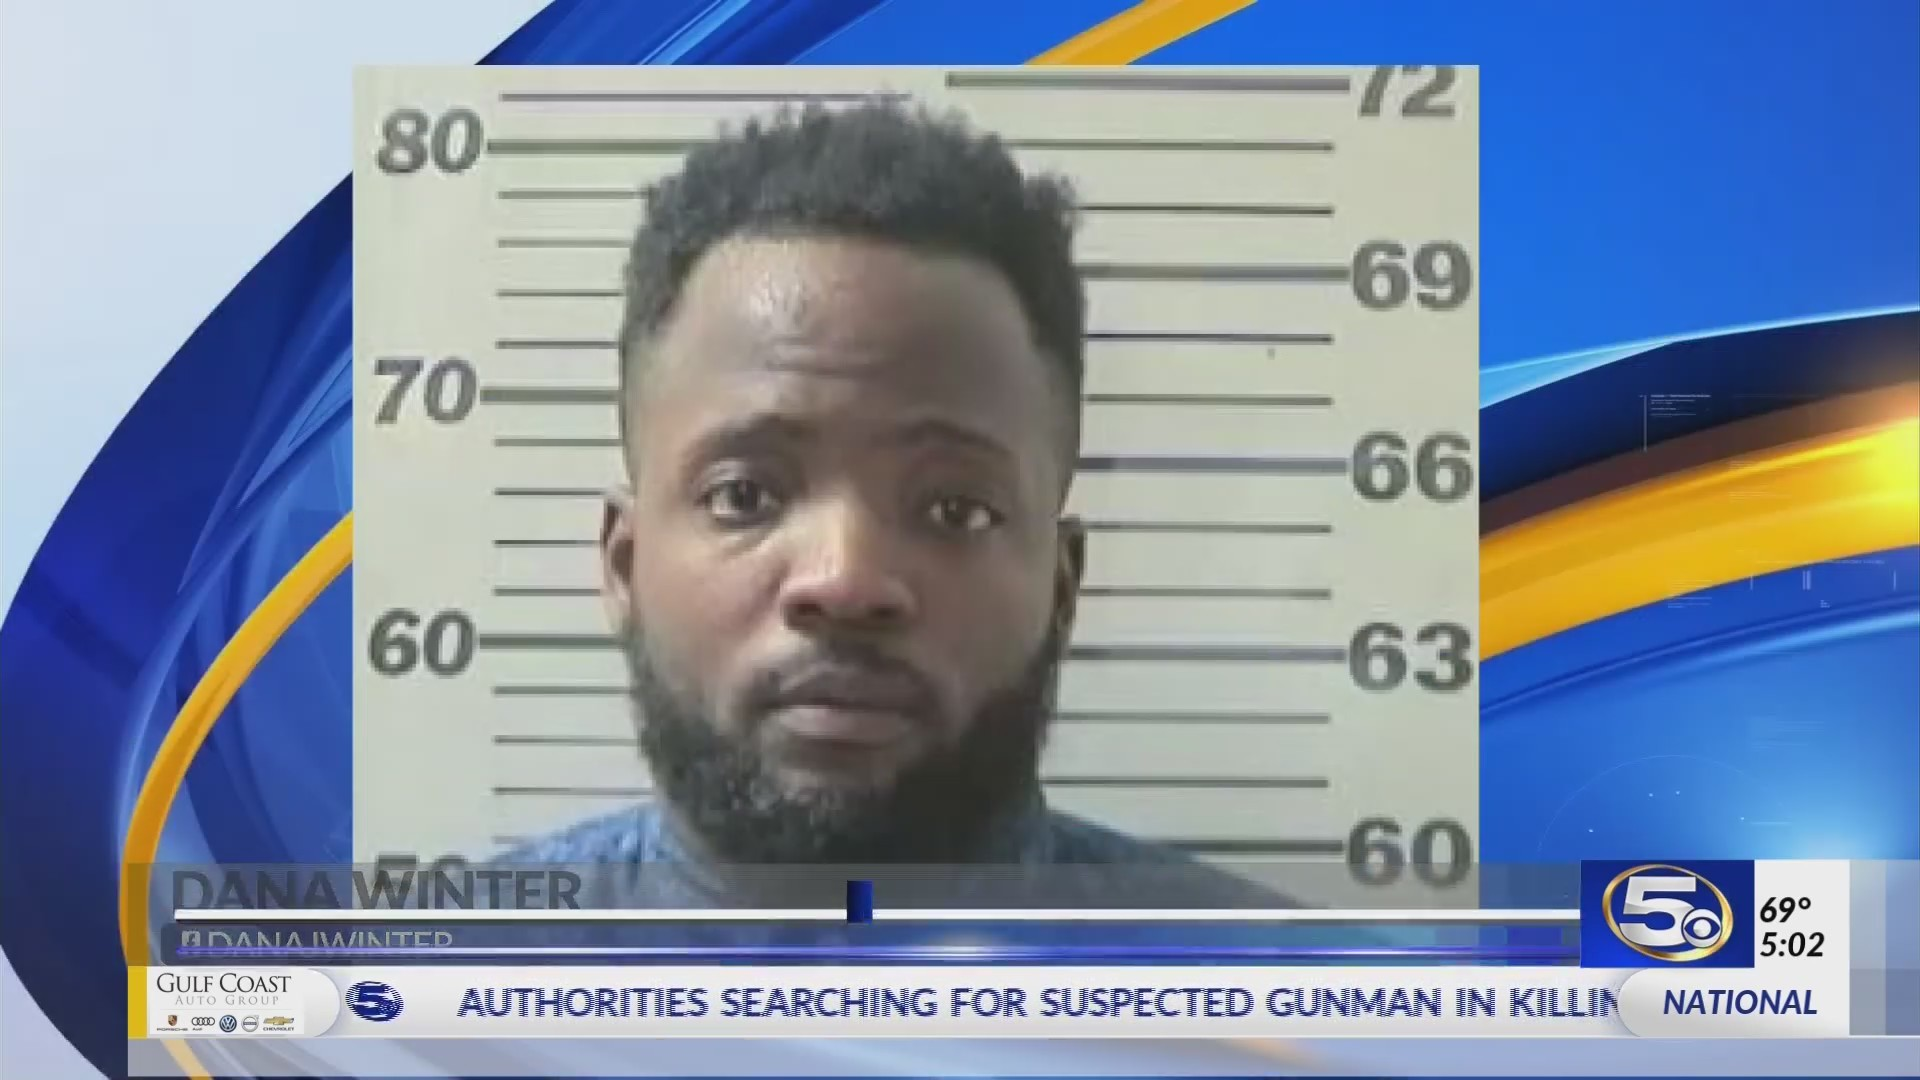 Man_arrested_in_deadly_hit_and_run_0_20181228035848